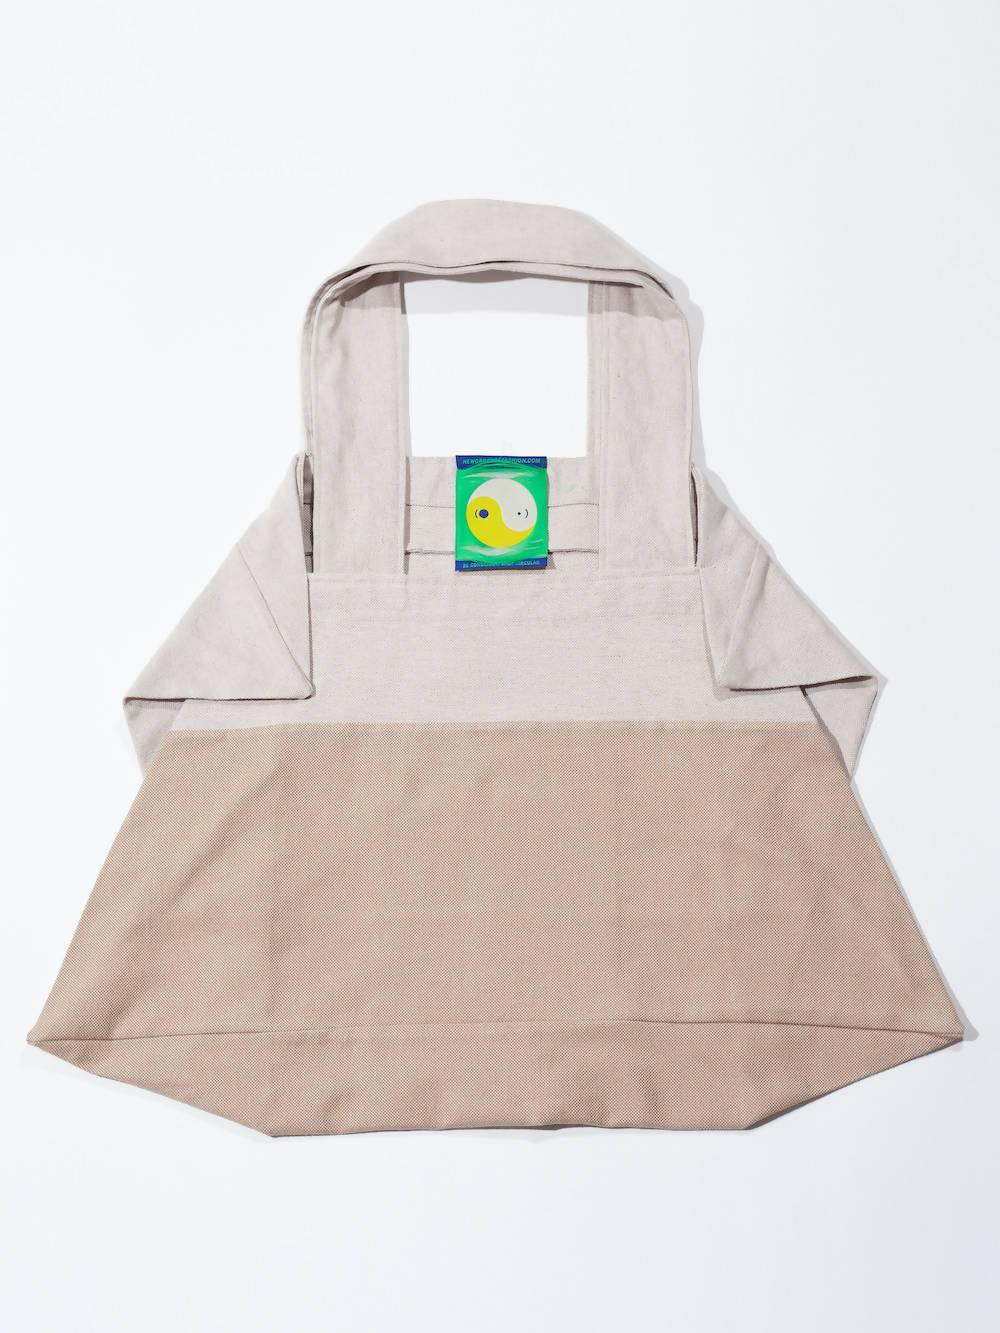 NEW ORDER OF FASHION SAND DARK FROM SCRATCH BAG